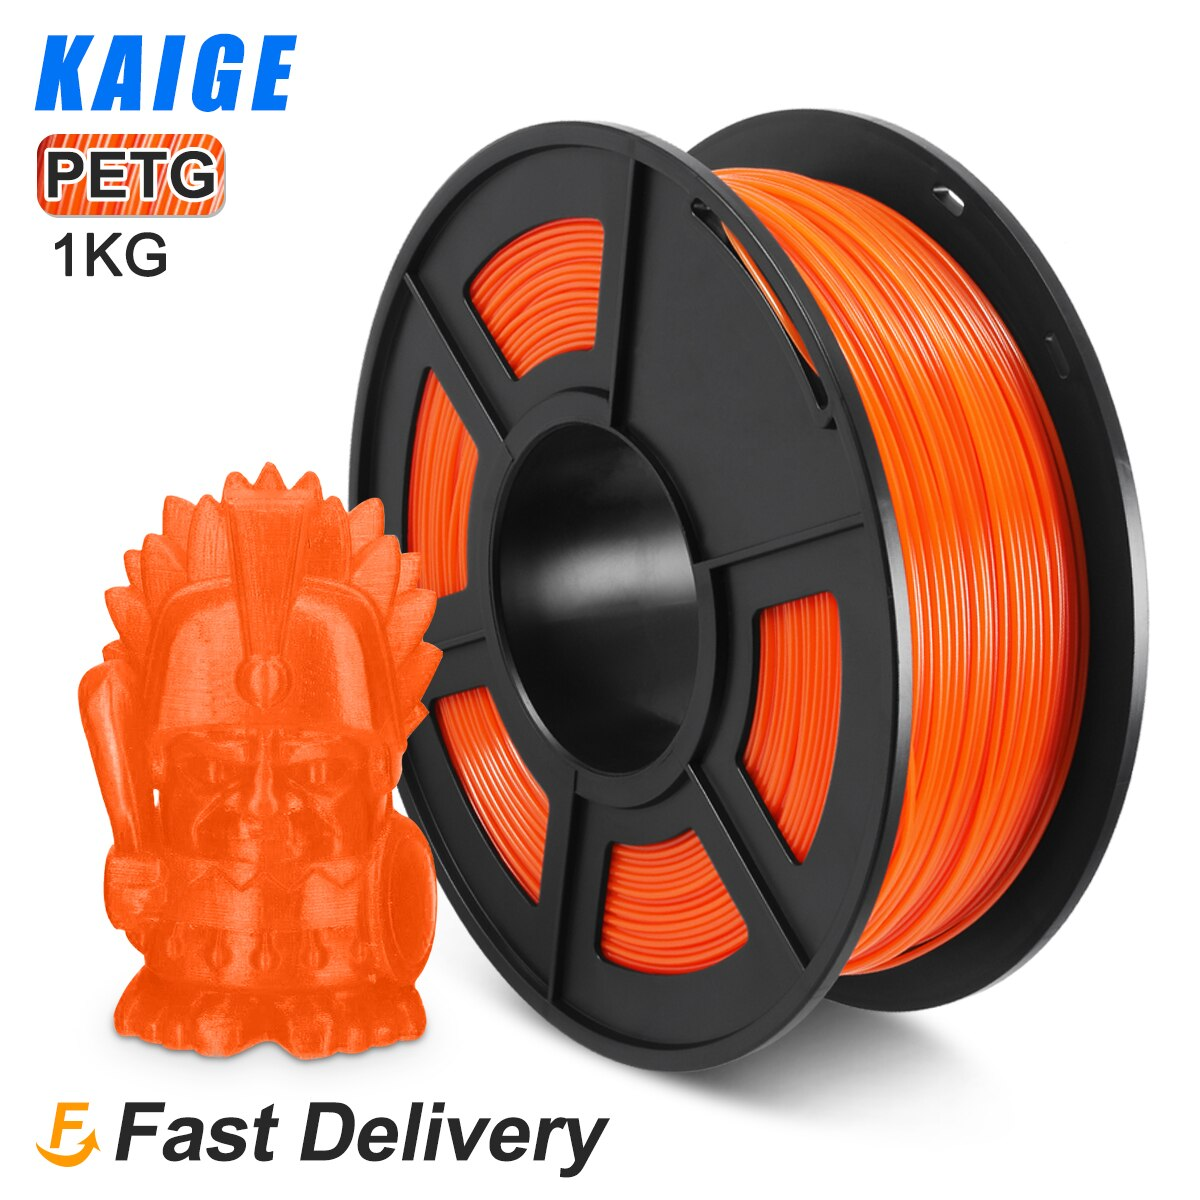 KAIGE PETG 1kg 1.75mm Orange 3D Printer Filament petg 1KG petg пластик 1 кг Tolerance -/+0.02 Good acid and alkali resistance